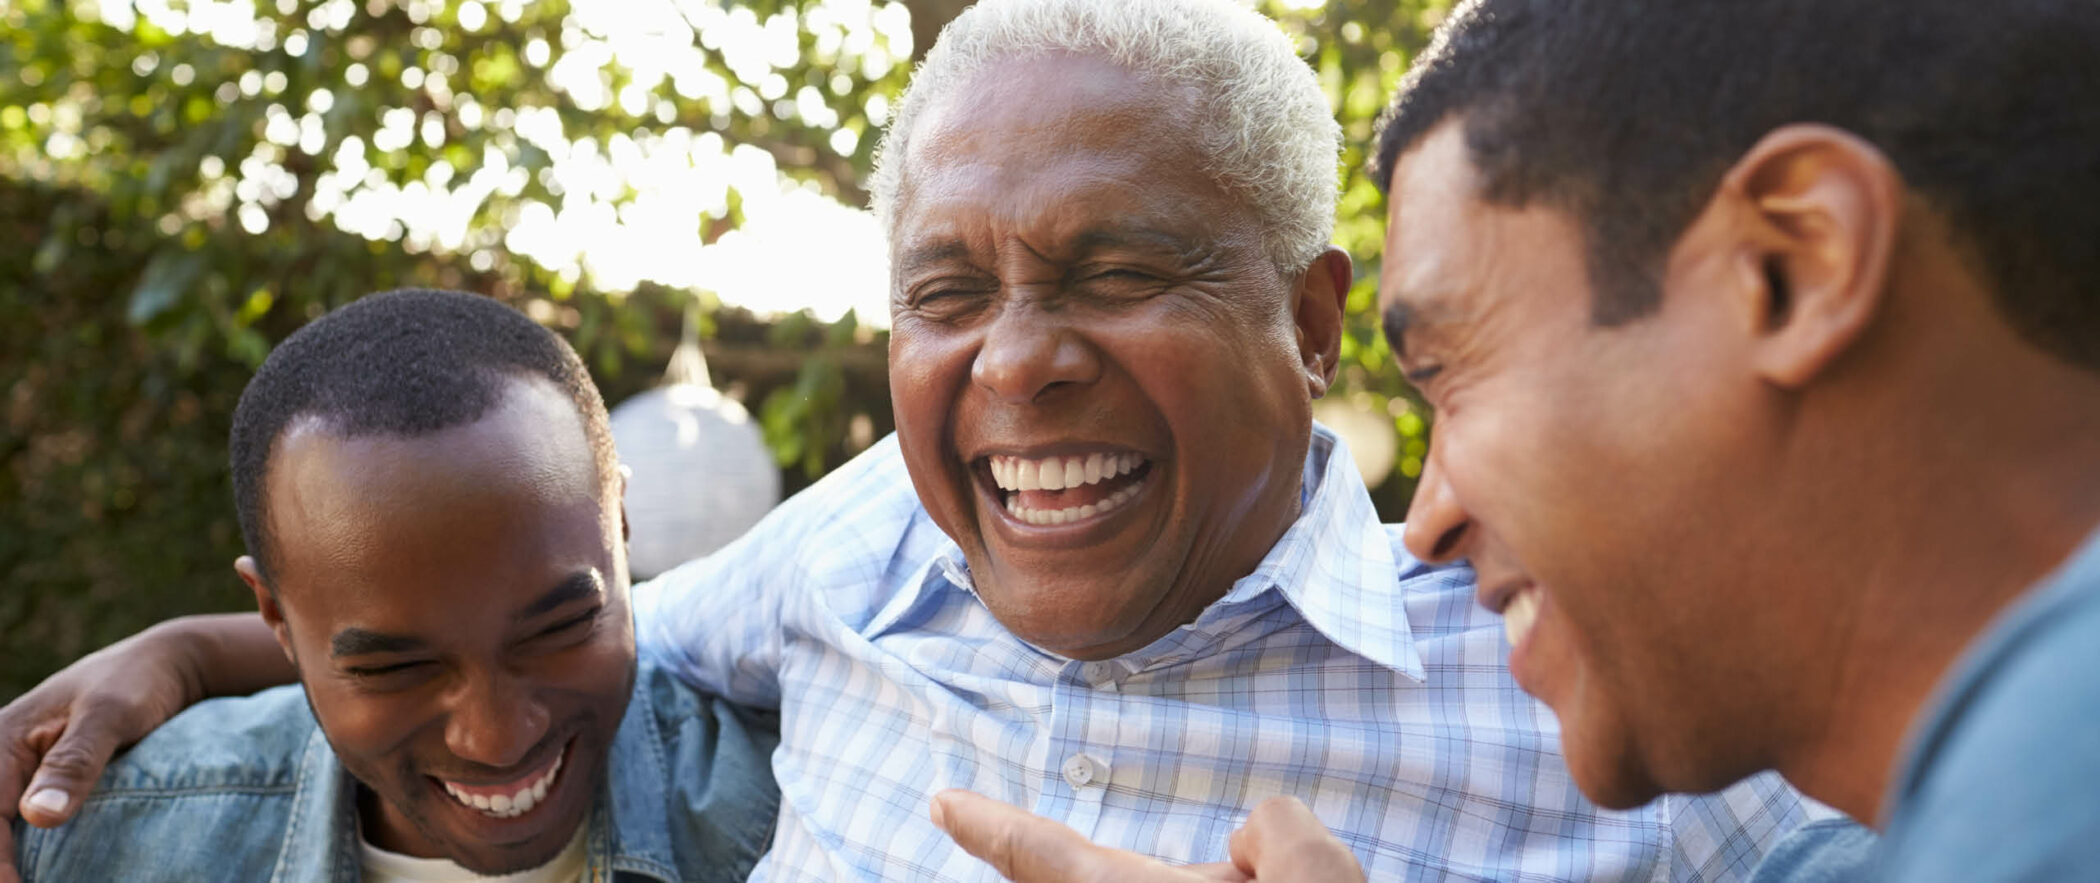 Senior man laughing on patio with two adult sons on each side and green trees behind